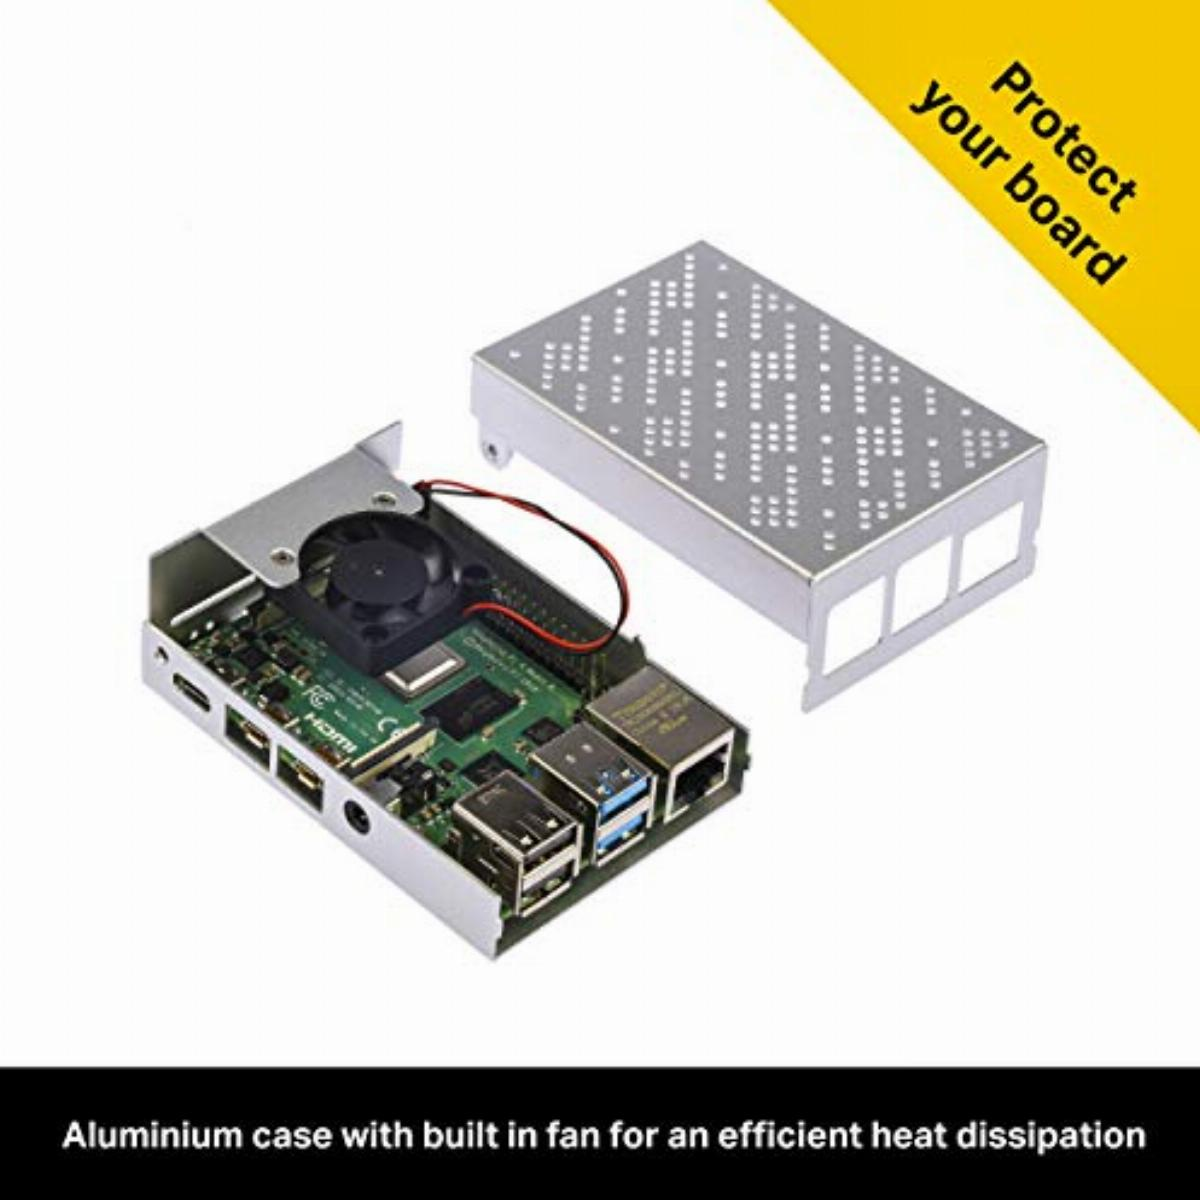 2 x HDMI Cables Aluminium Case With Fan 32GB Micro SD Card with Noobs Power Supply OKdo Raspberry Pi 4 8GB Starter Kit with Raspberry Pi 4 Model B 8GB USB C Cable 3 x Heat Sinks